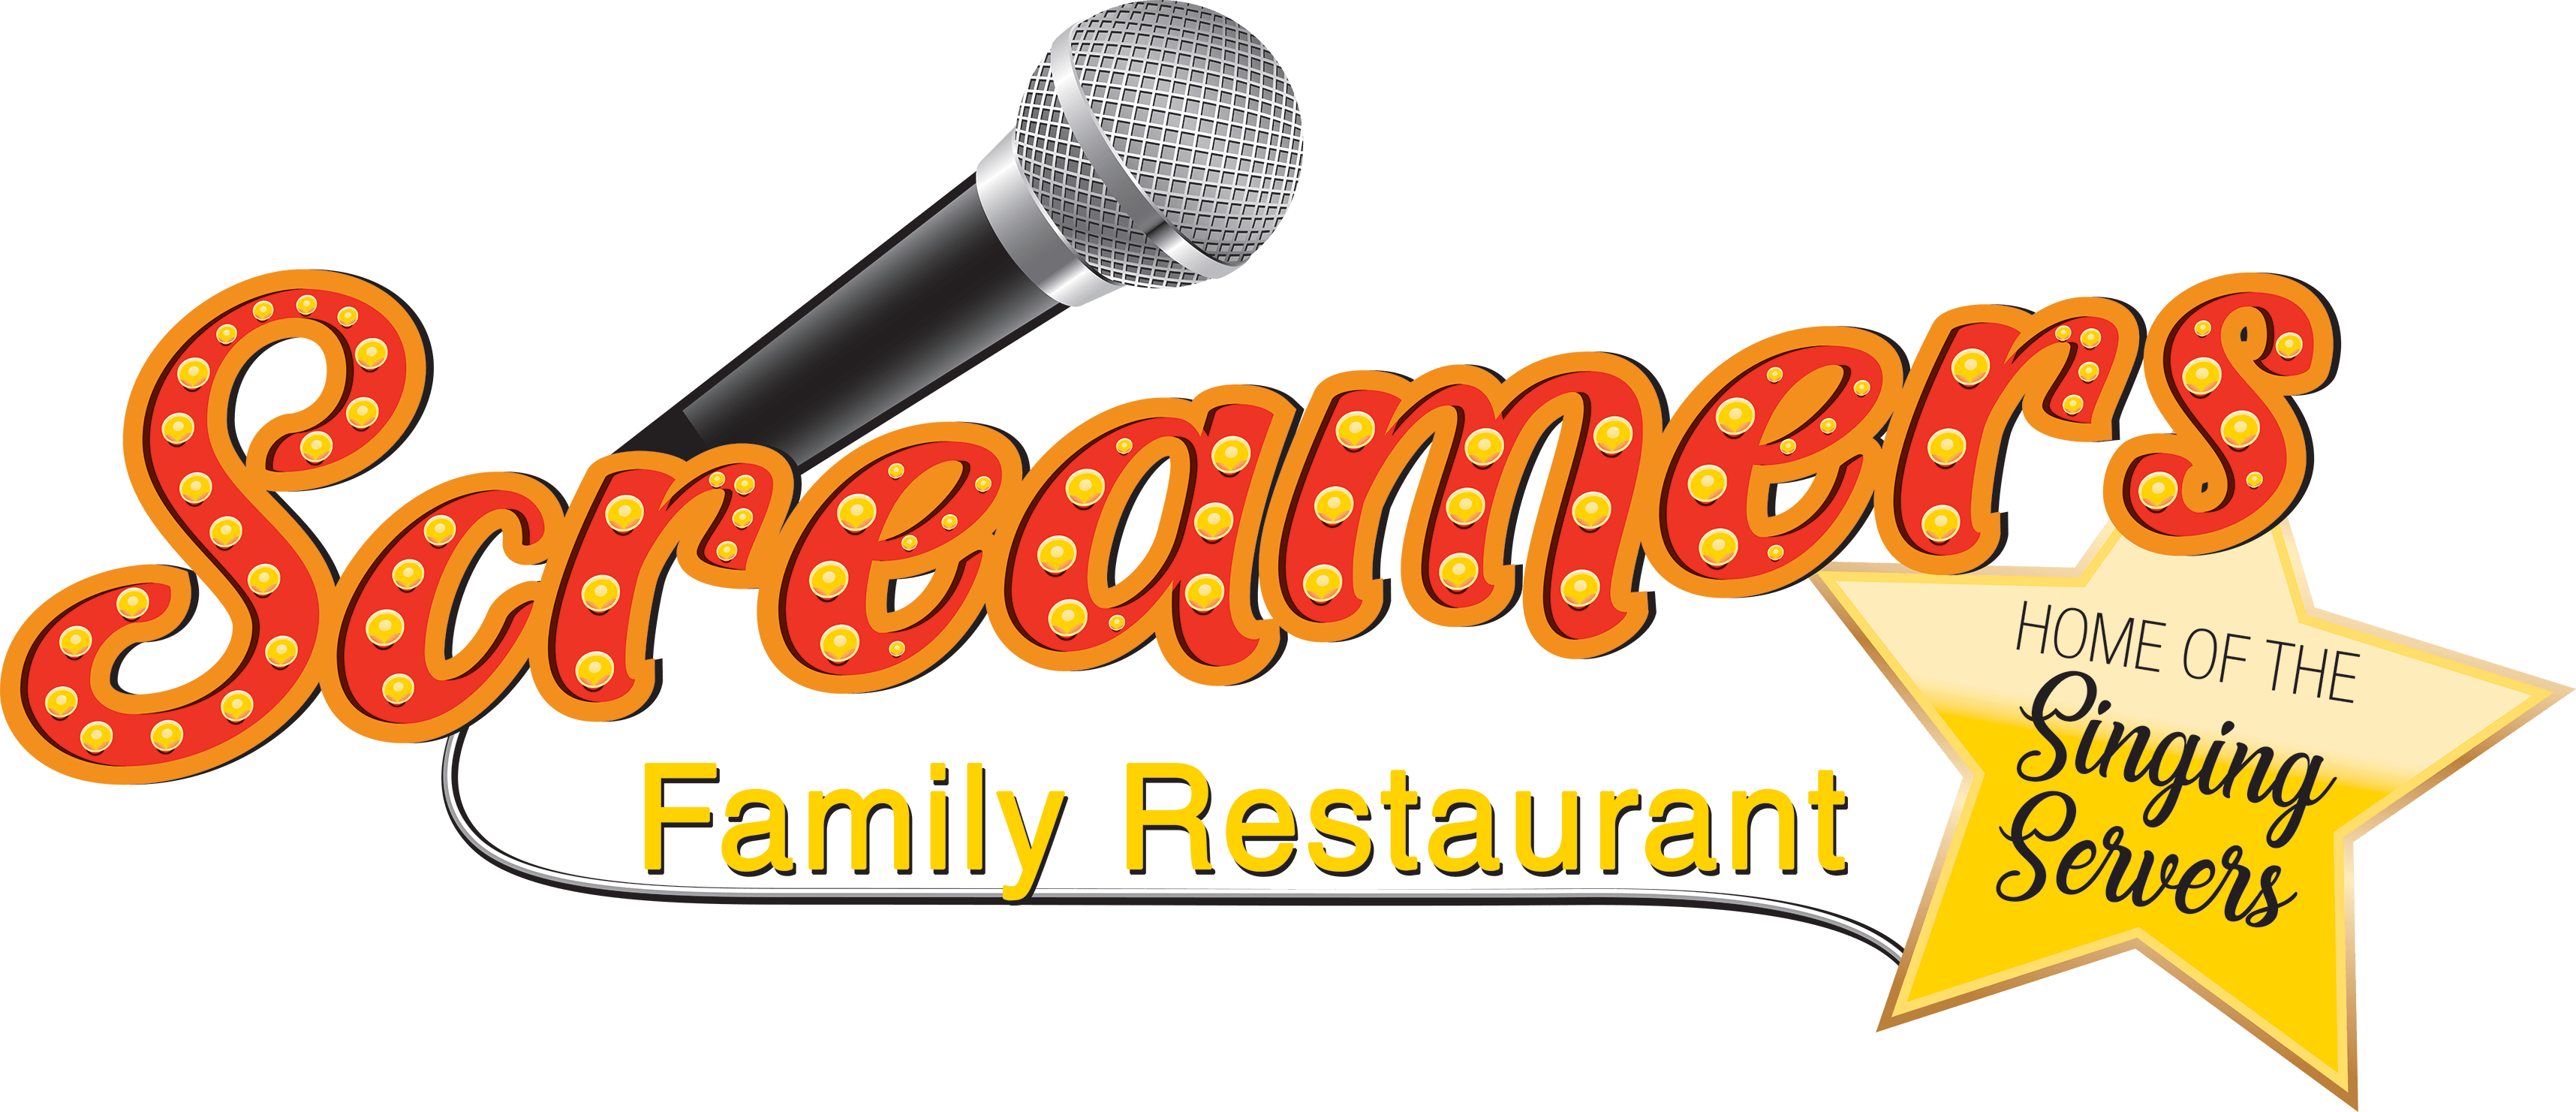 Screamers Dining and Cabaret Home